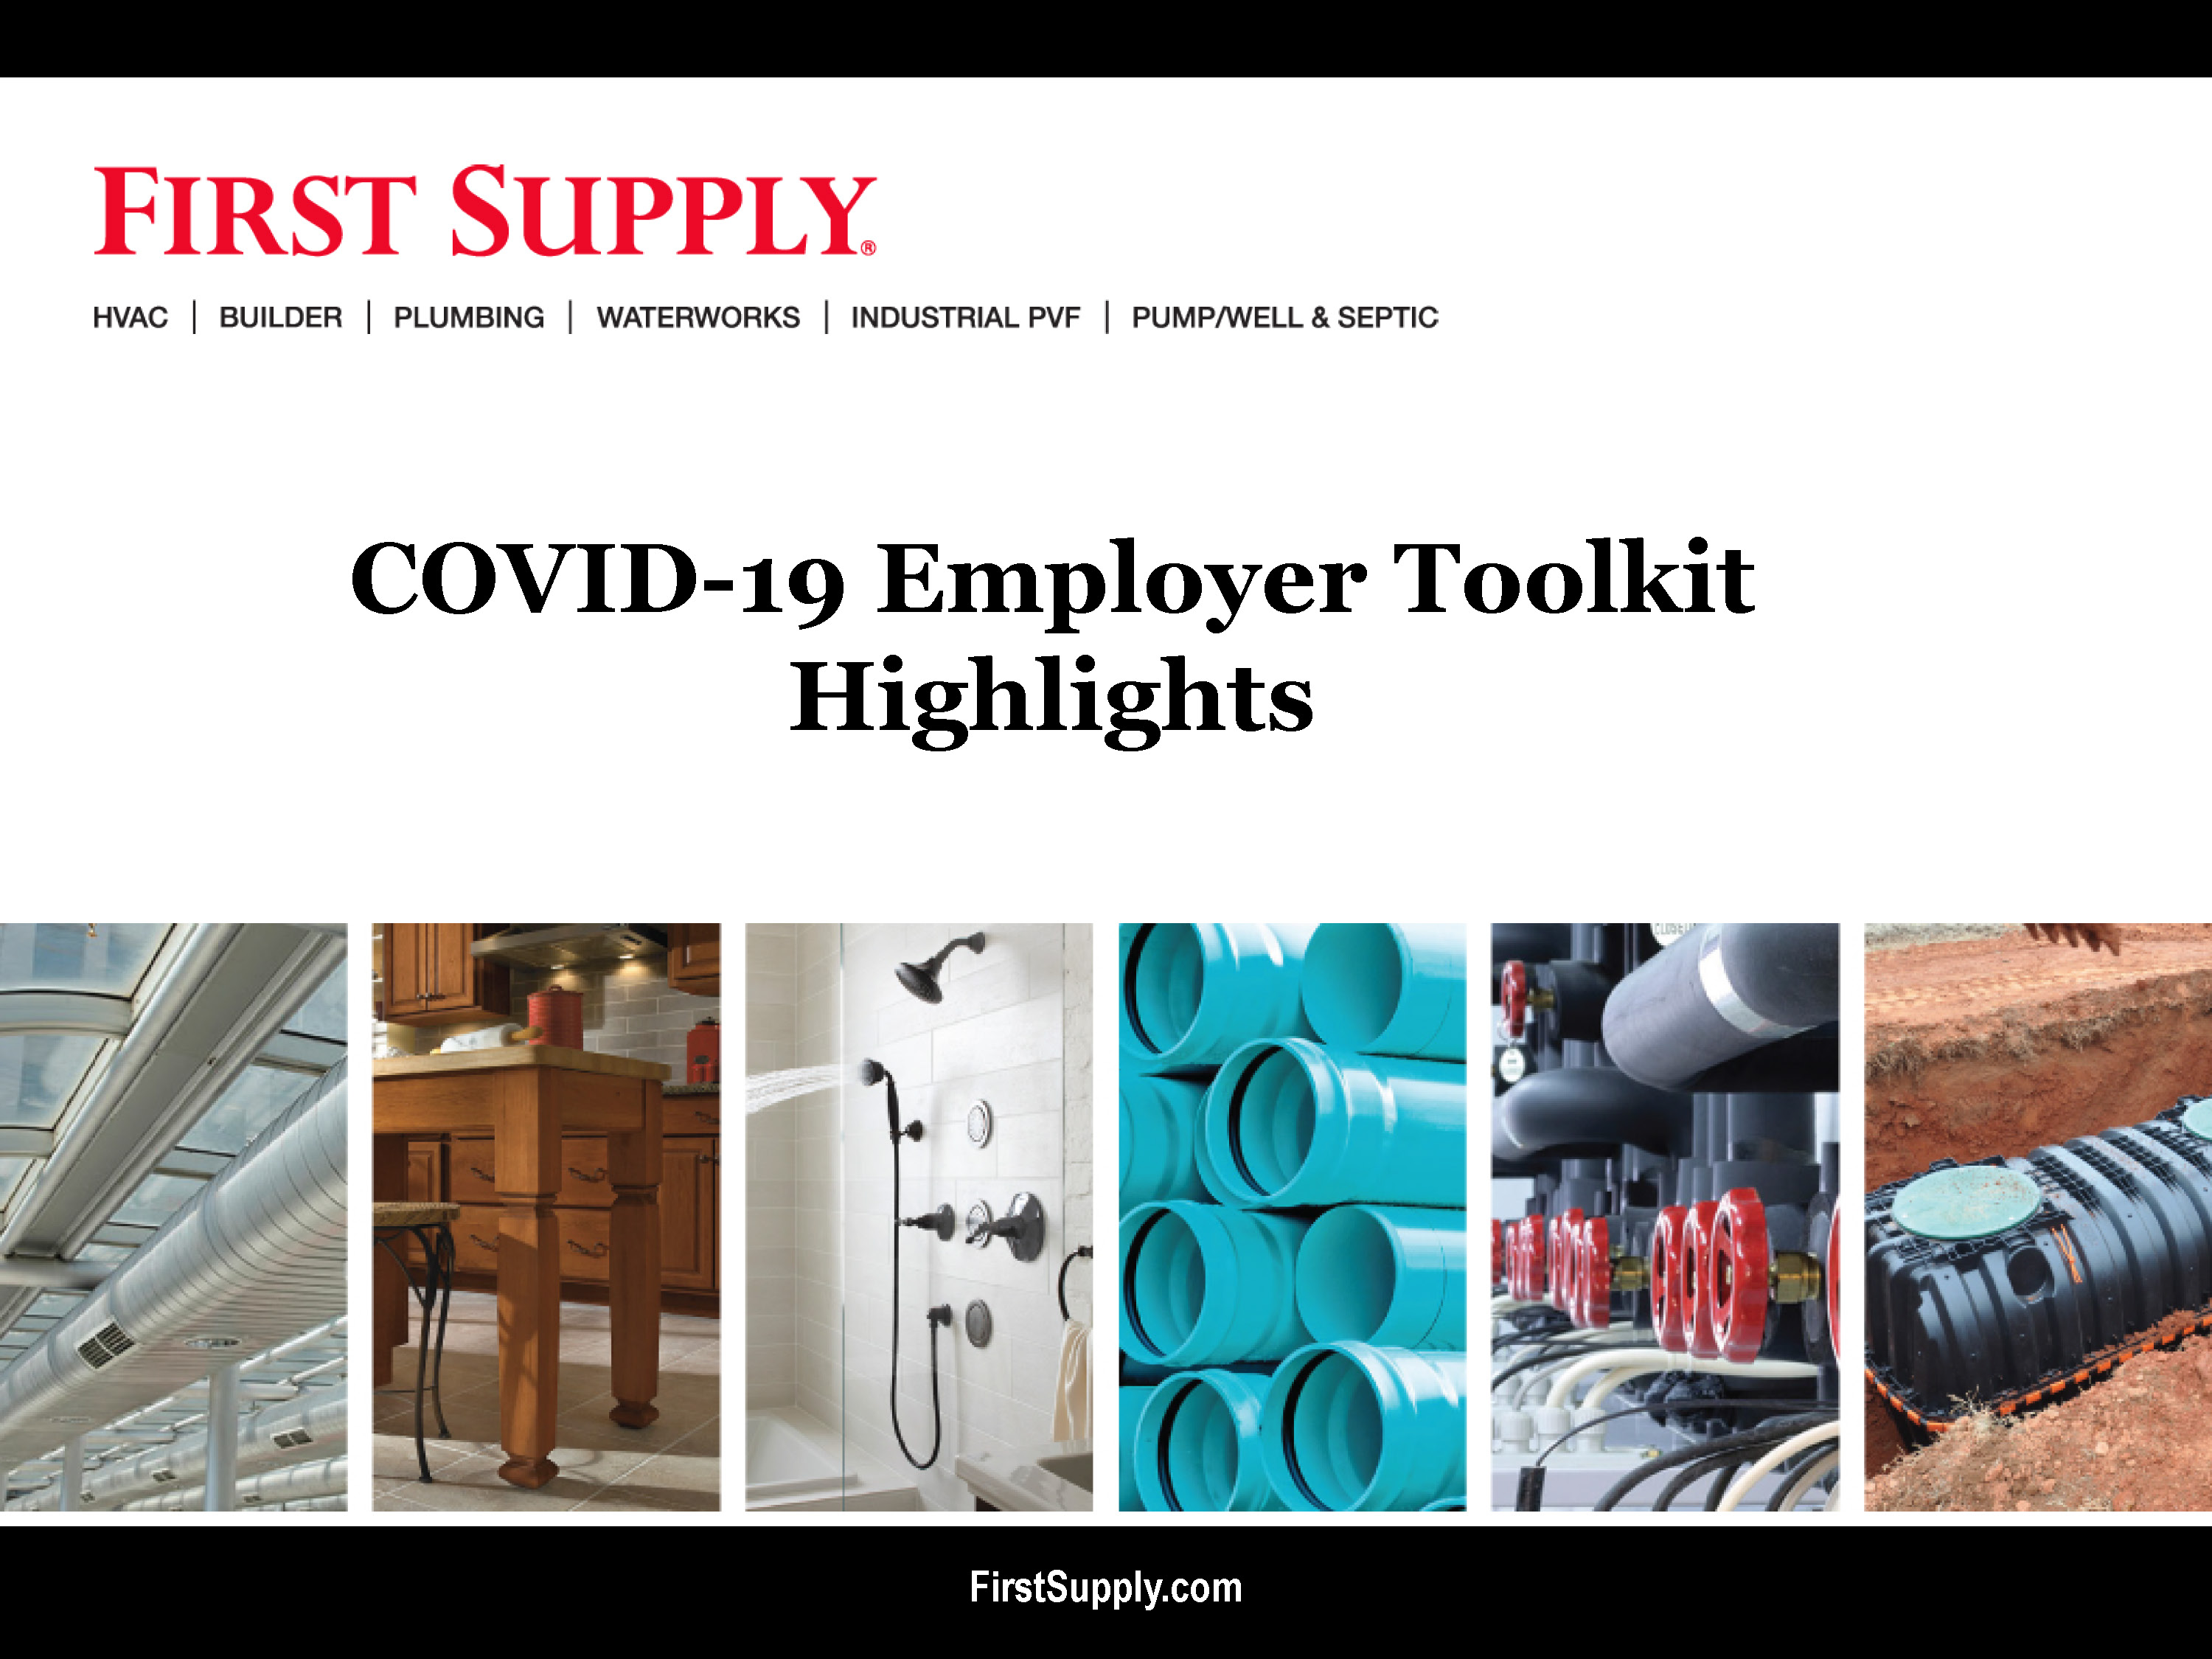 COVID-19 Employer Toolkit Highlights